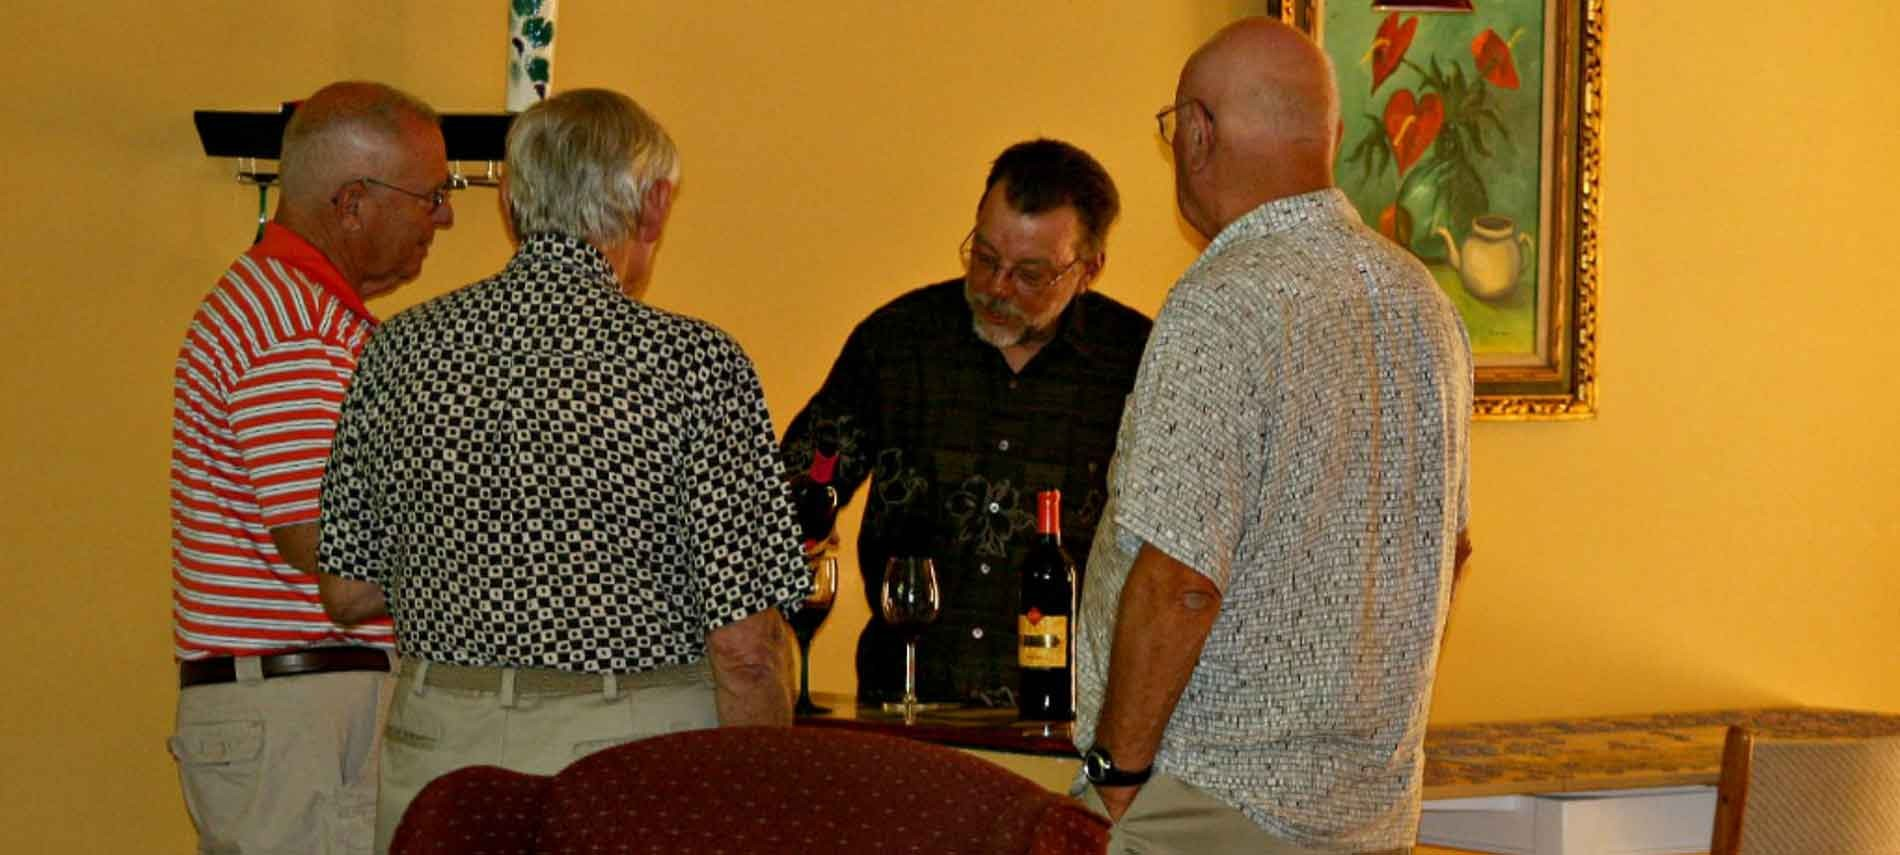 Three men standing with back to camera with a man pouring wine in a yellow colored room